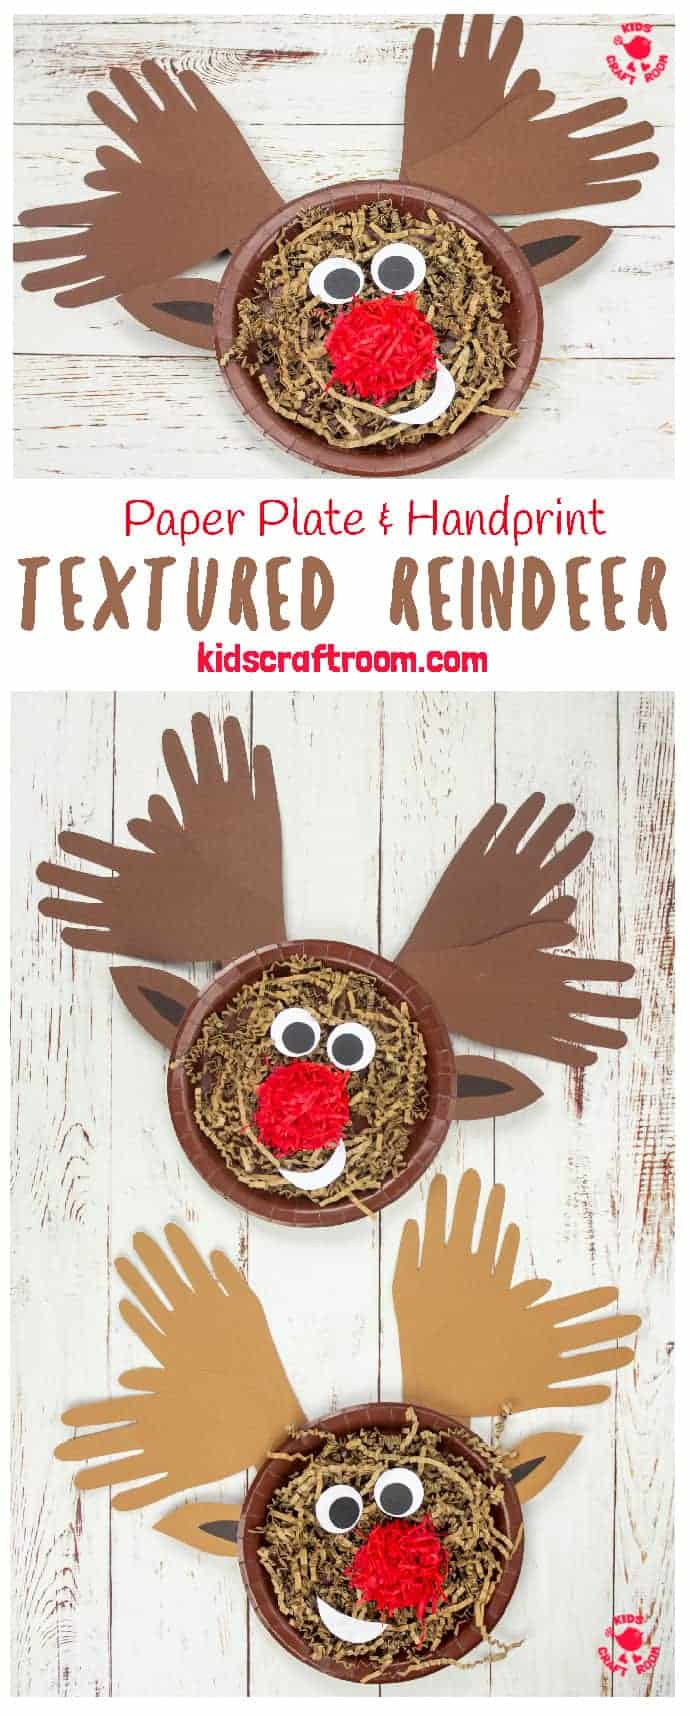 This textured Handprint and Paper Plate Reindeer craft is super simple to make. An adorably cute Christmas craft for toddlers and preschoolers and a lovely Christmas keepsake. #kidscraftroom #kidscrafts #christmascrafts #reindeercrafts #rudolfcrafts #paperplatecrafts #handprintcrafts #toddlercrafts #preschoolcrafts #reindeer #rudolf